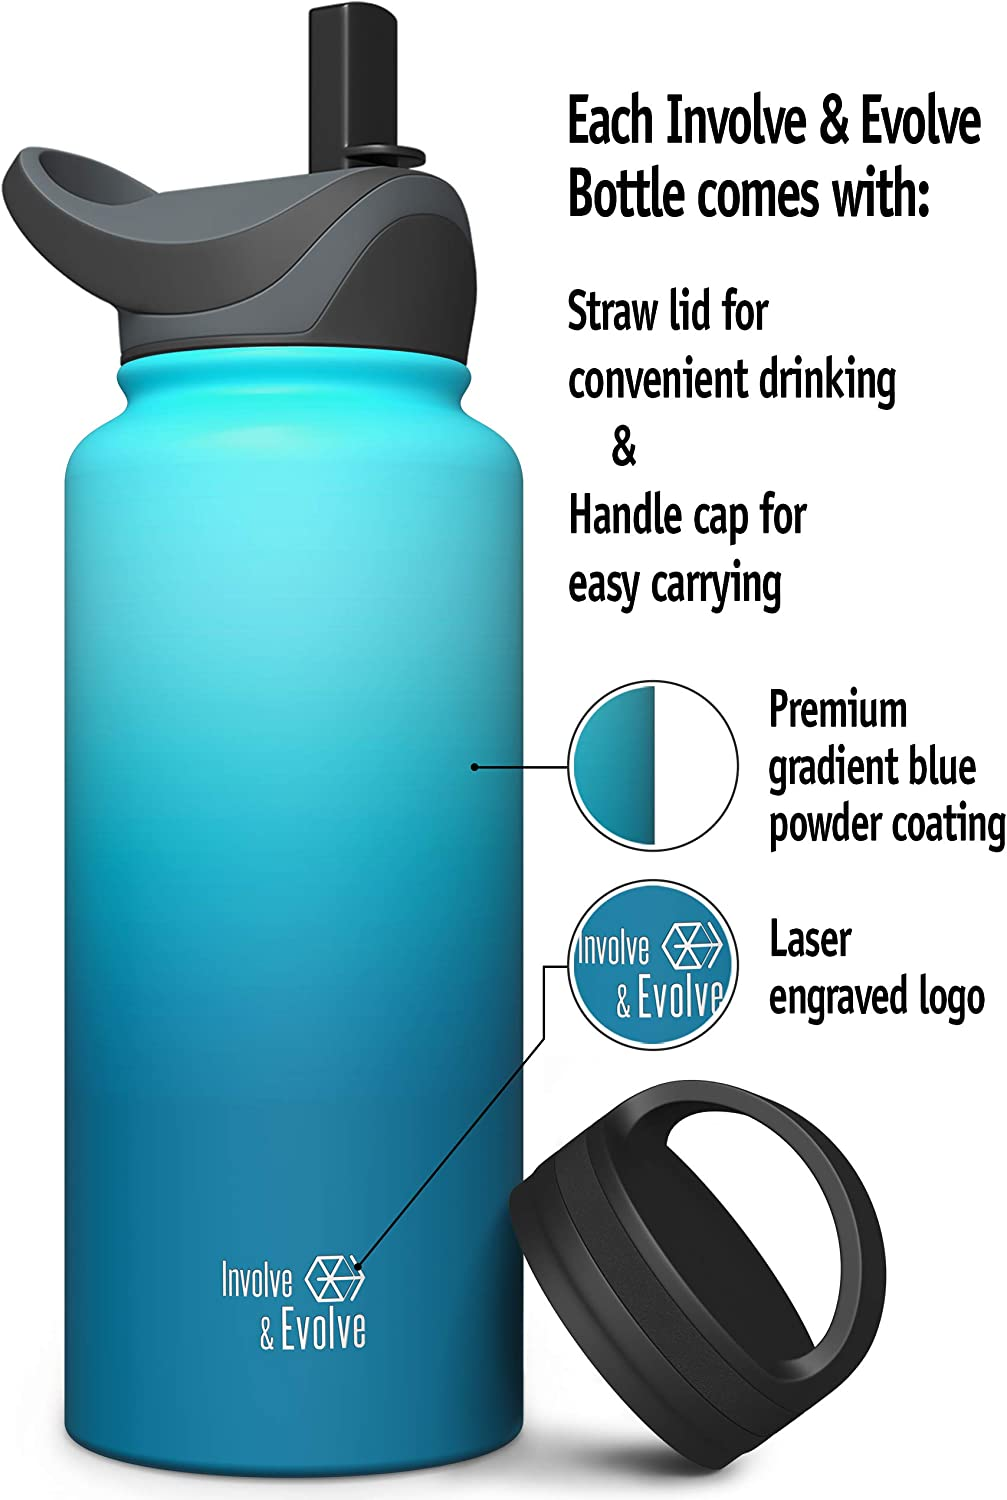 Involve Evolve Insulated Water Bottle With 2 Lids Straw Lid Reusable Double Walled Wide Mouth Stainless Steel Kids Flask Thermos 18oz 24oz 32oz 40oz Sports Outdoors